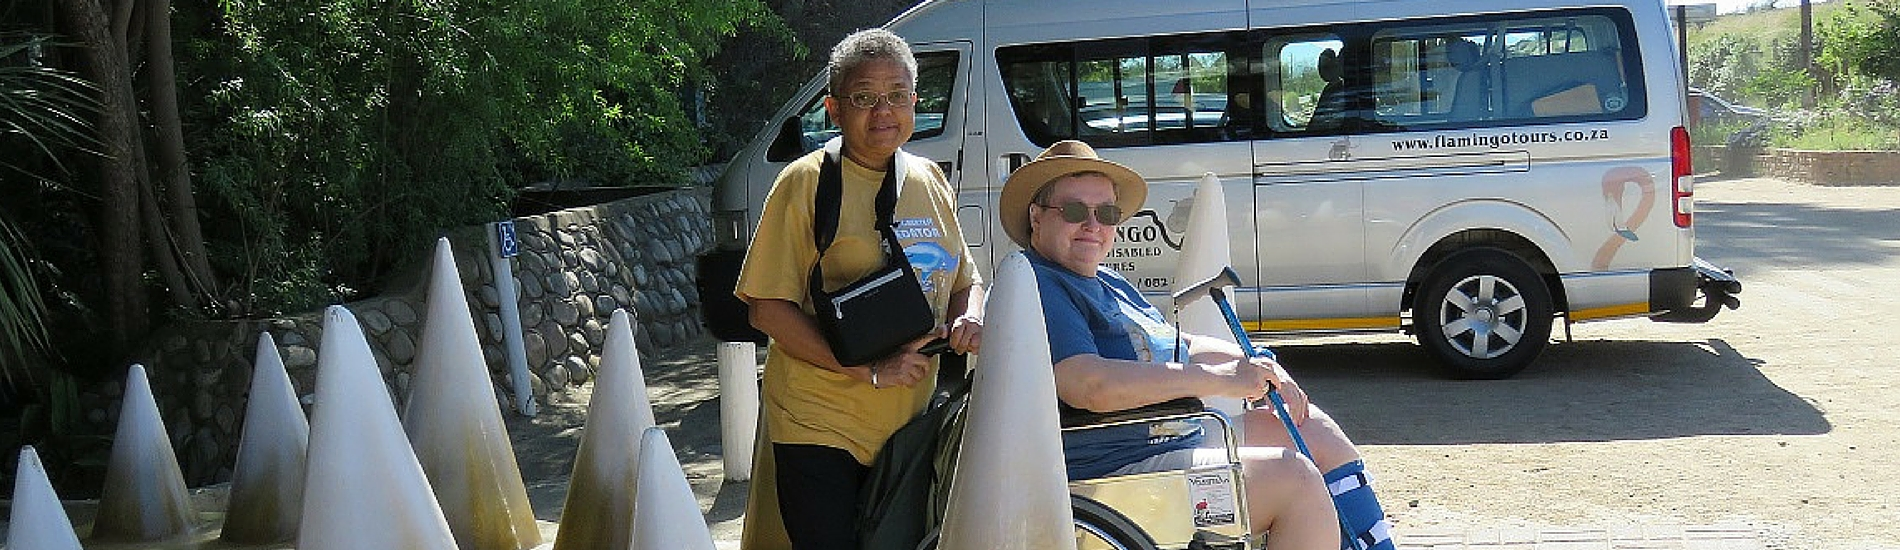 Flamingo Tours and Disabled Ventures